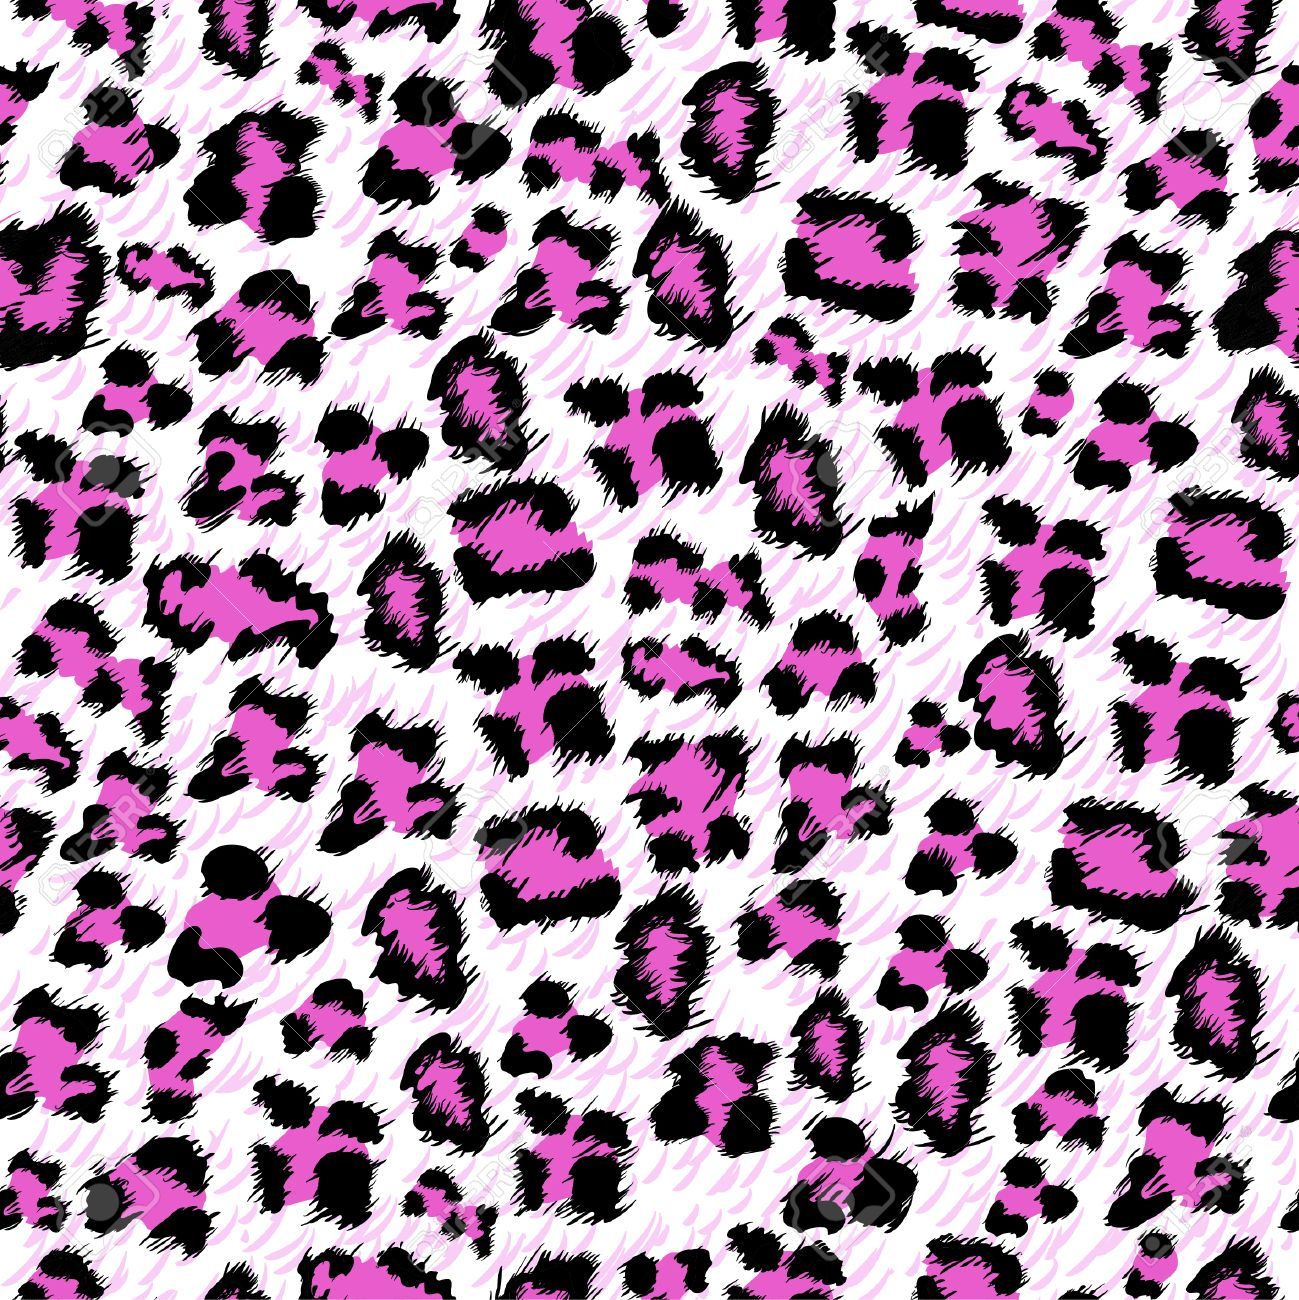 Pink and white cheetah print background